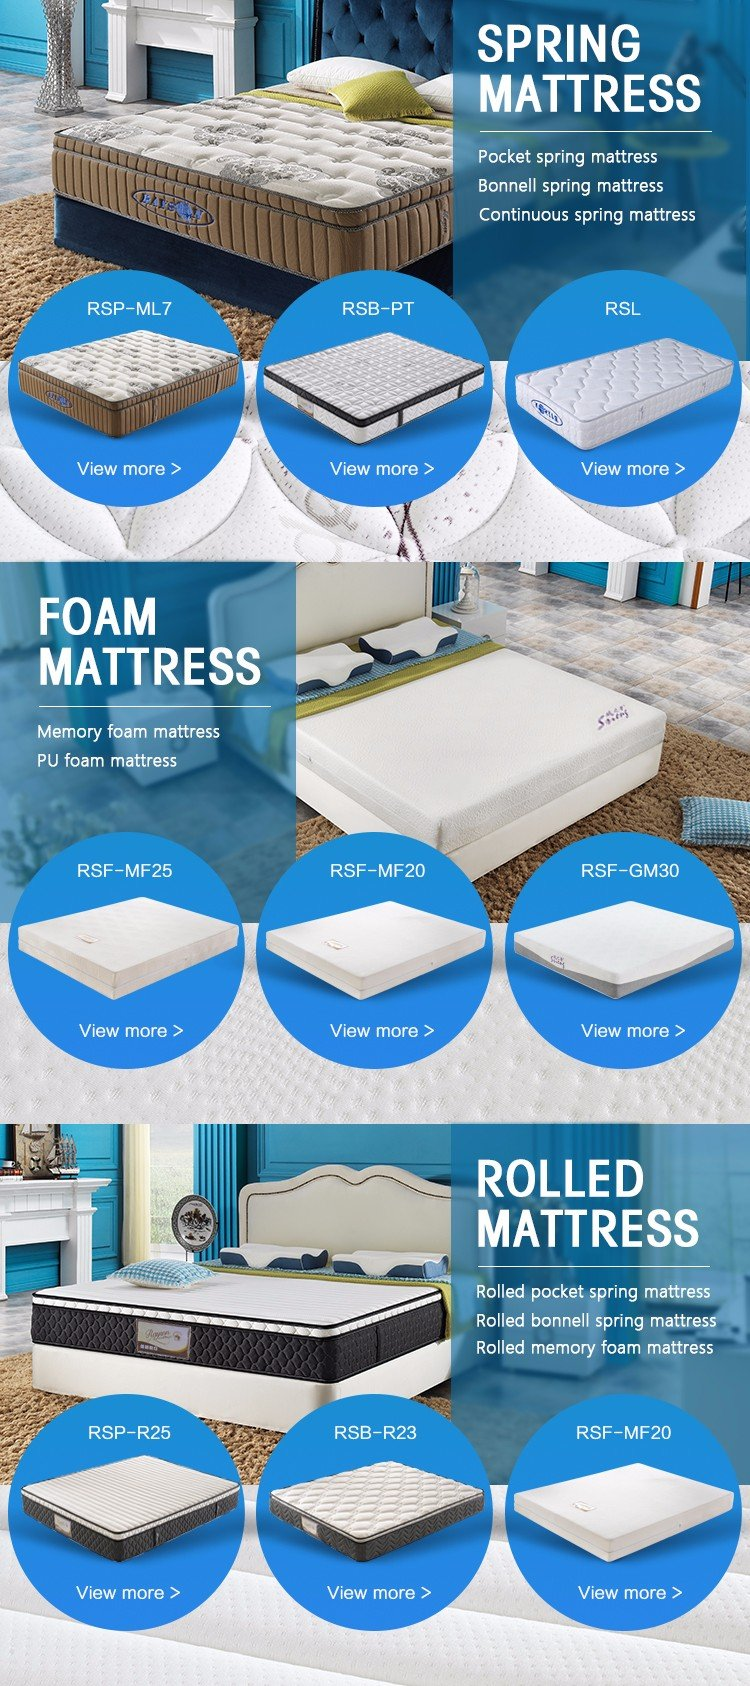 Rayson Mattress foam 1000 pocket sprung single mattress Suppliers-10